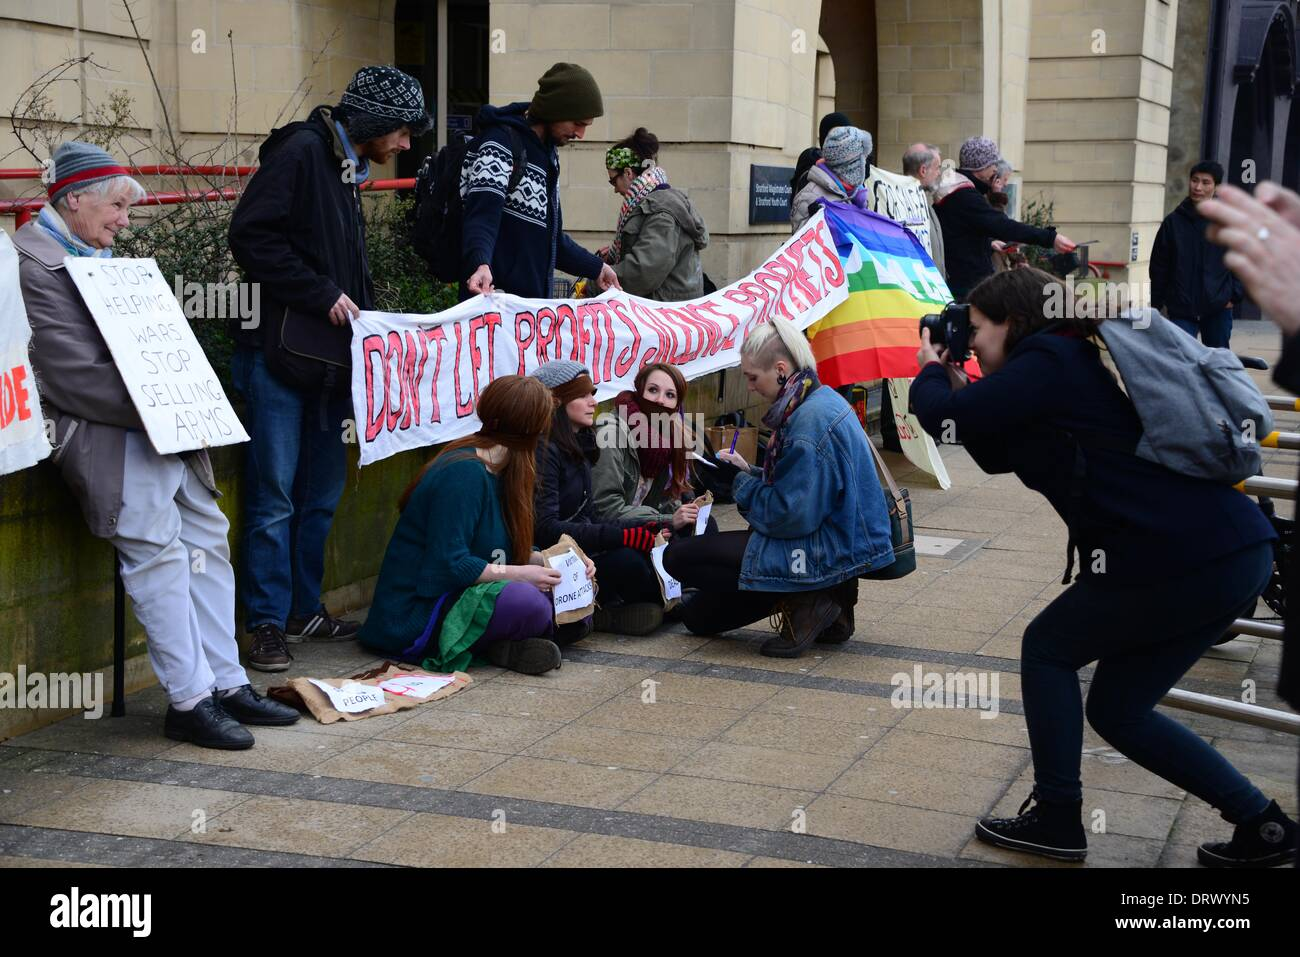 London UK, 3 Feb 2014 : A peaceful demonstration in support of the Five Christians in Court  whose action blocked Stock Photo